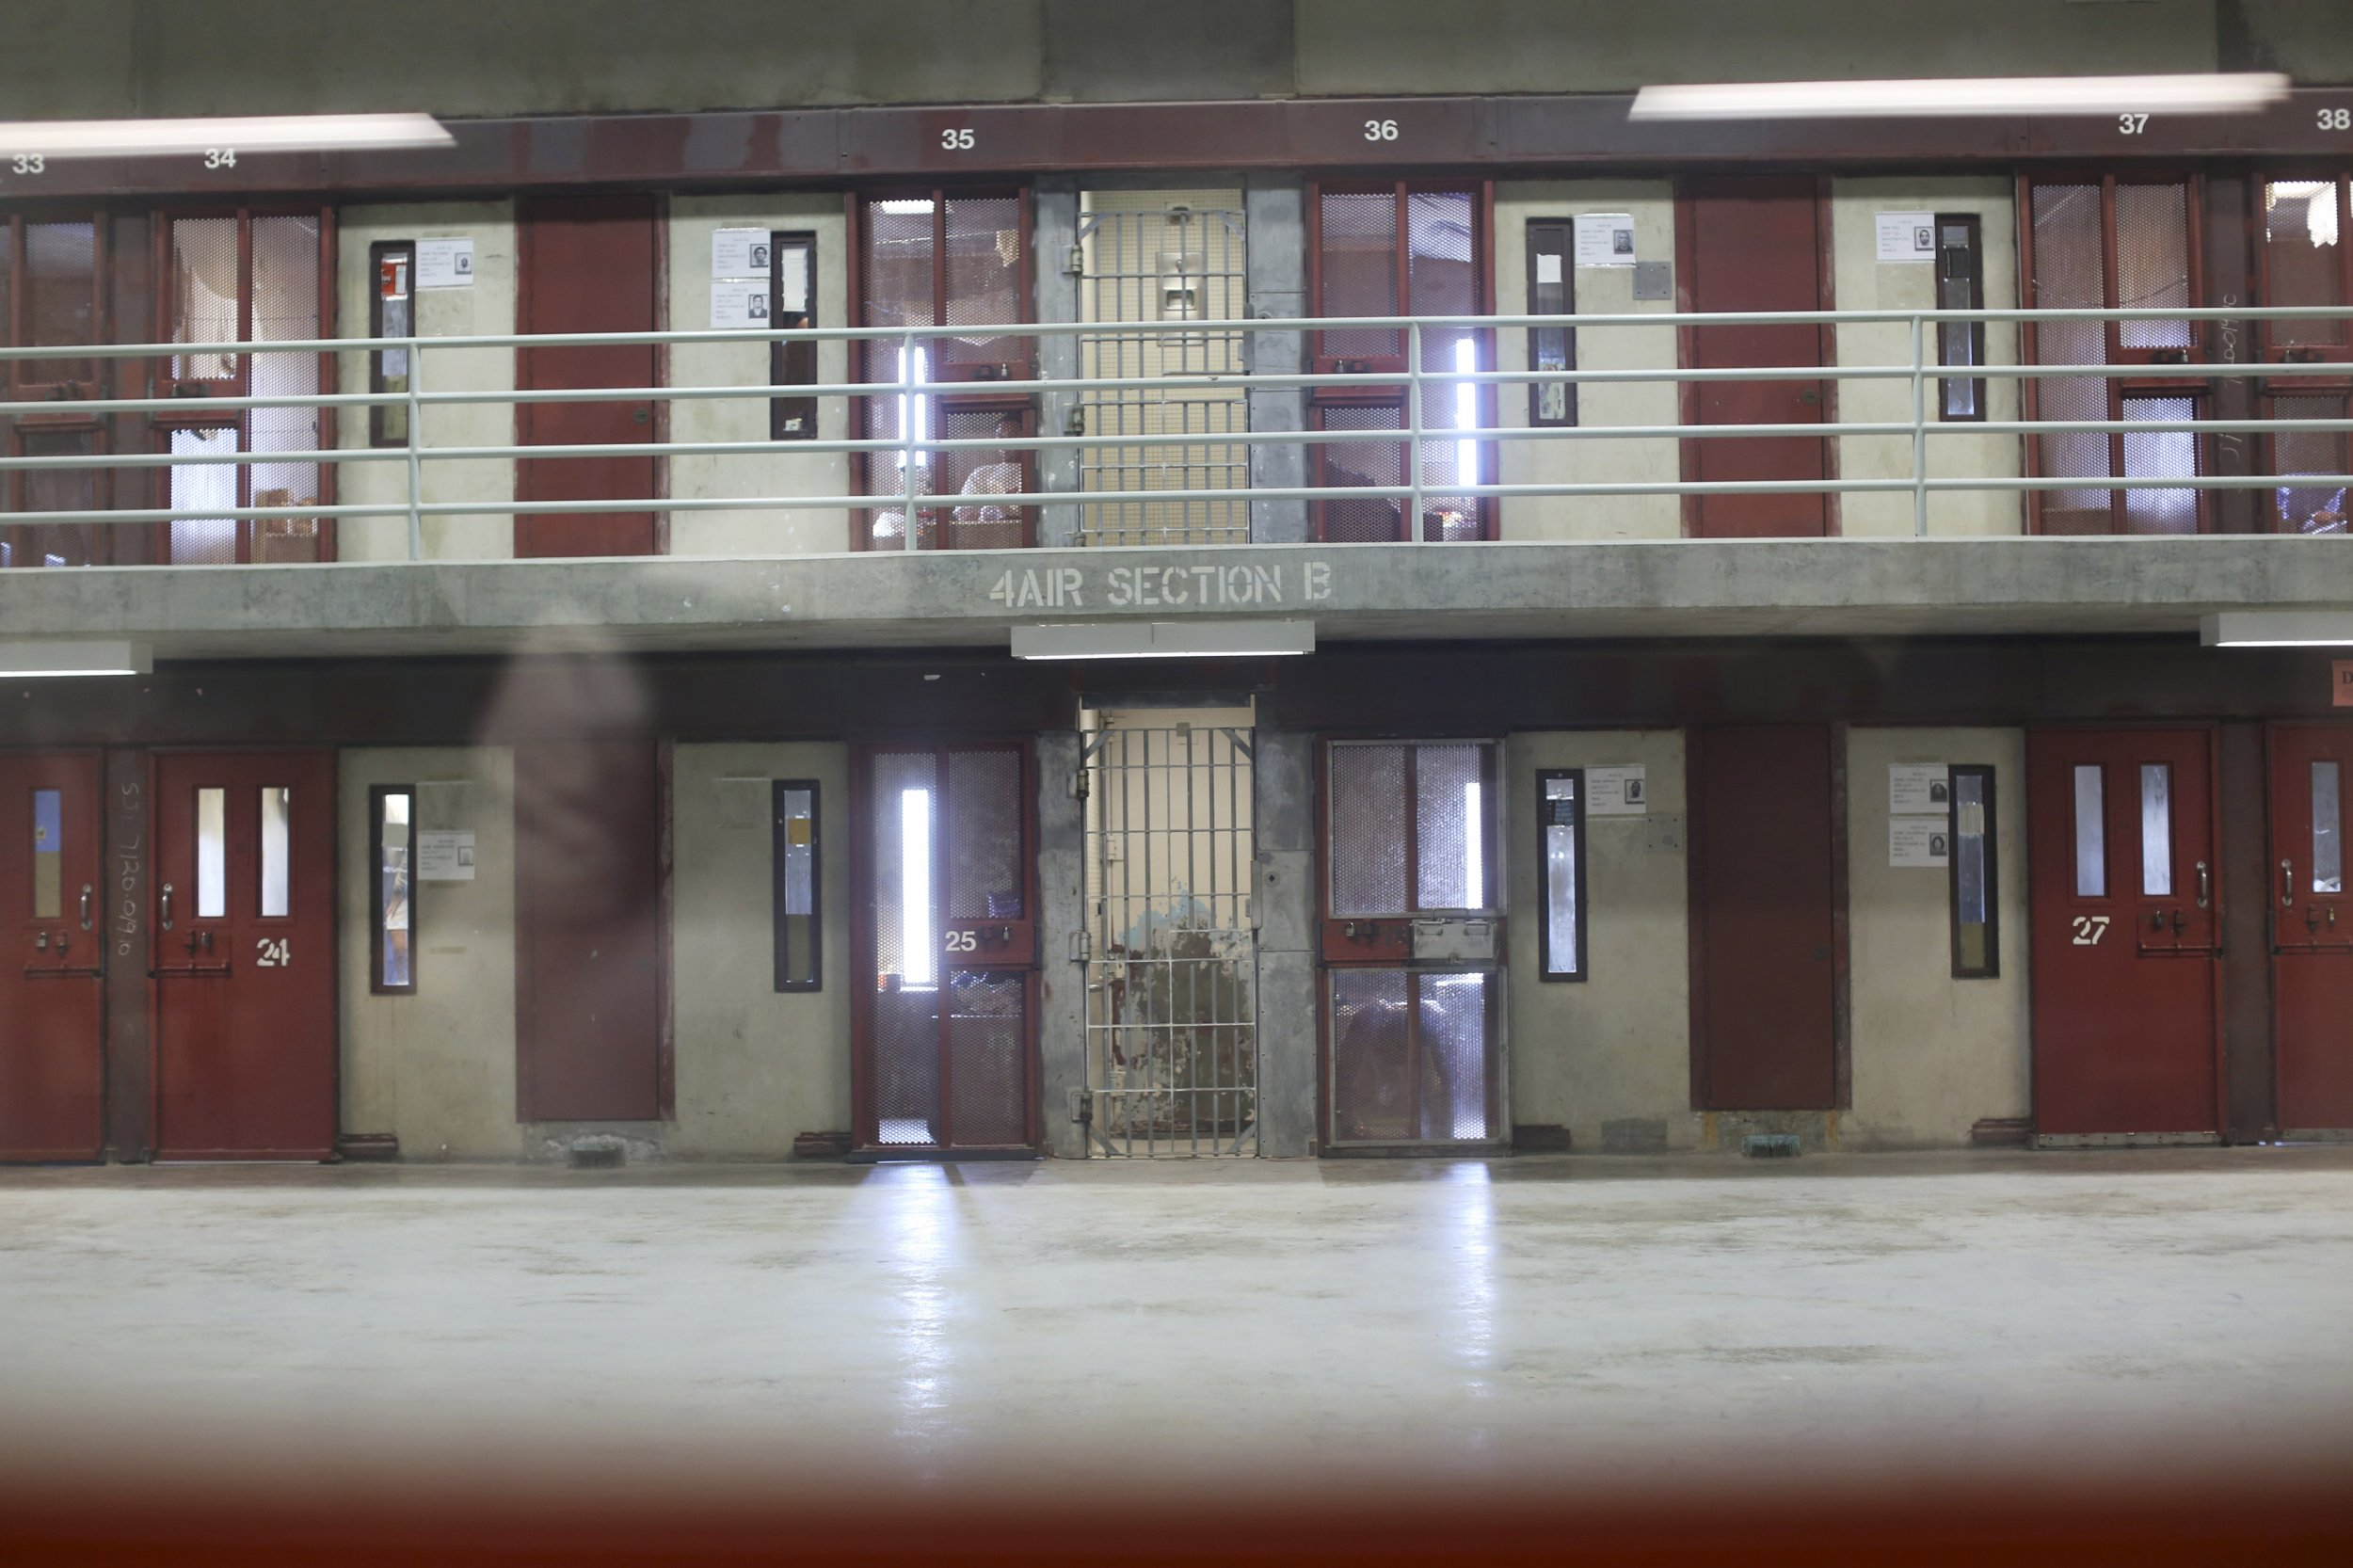 state prison populations show upswings, declines